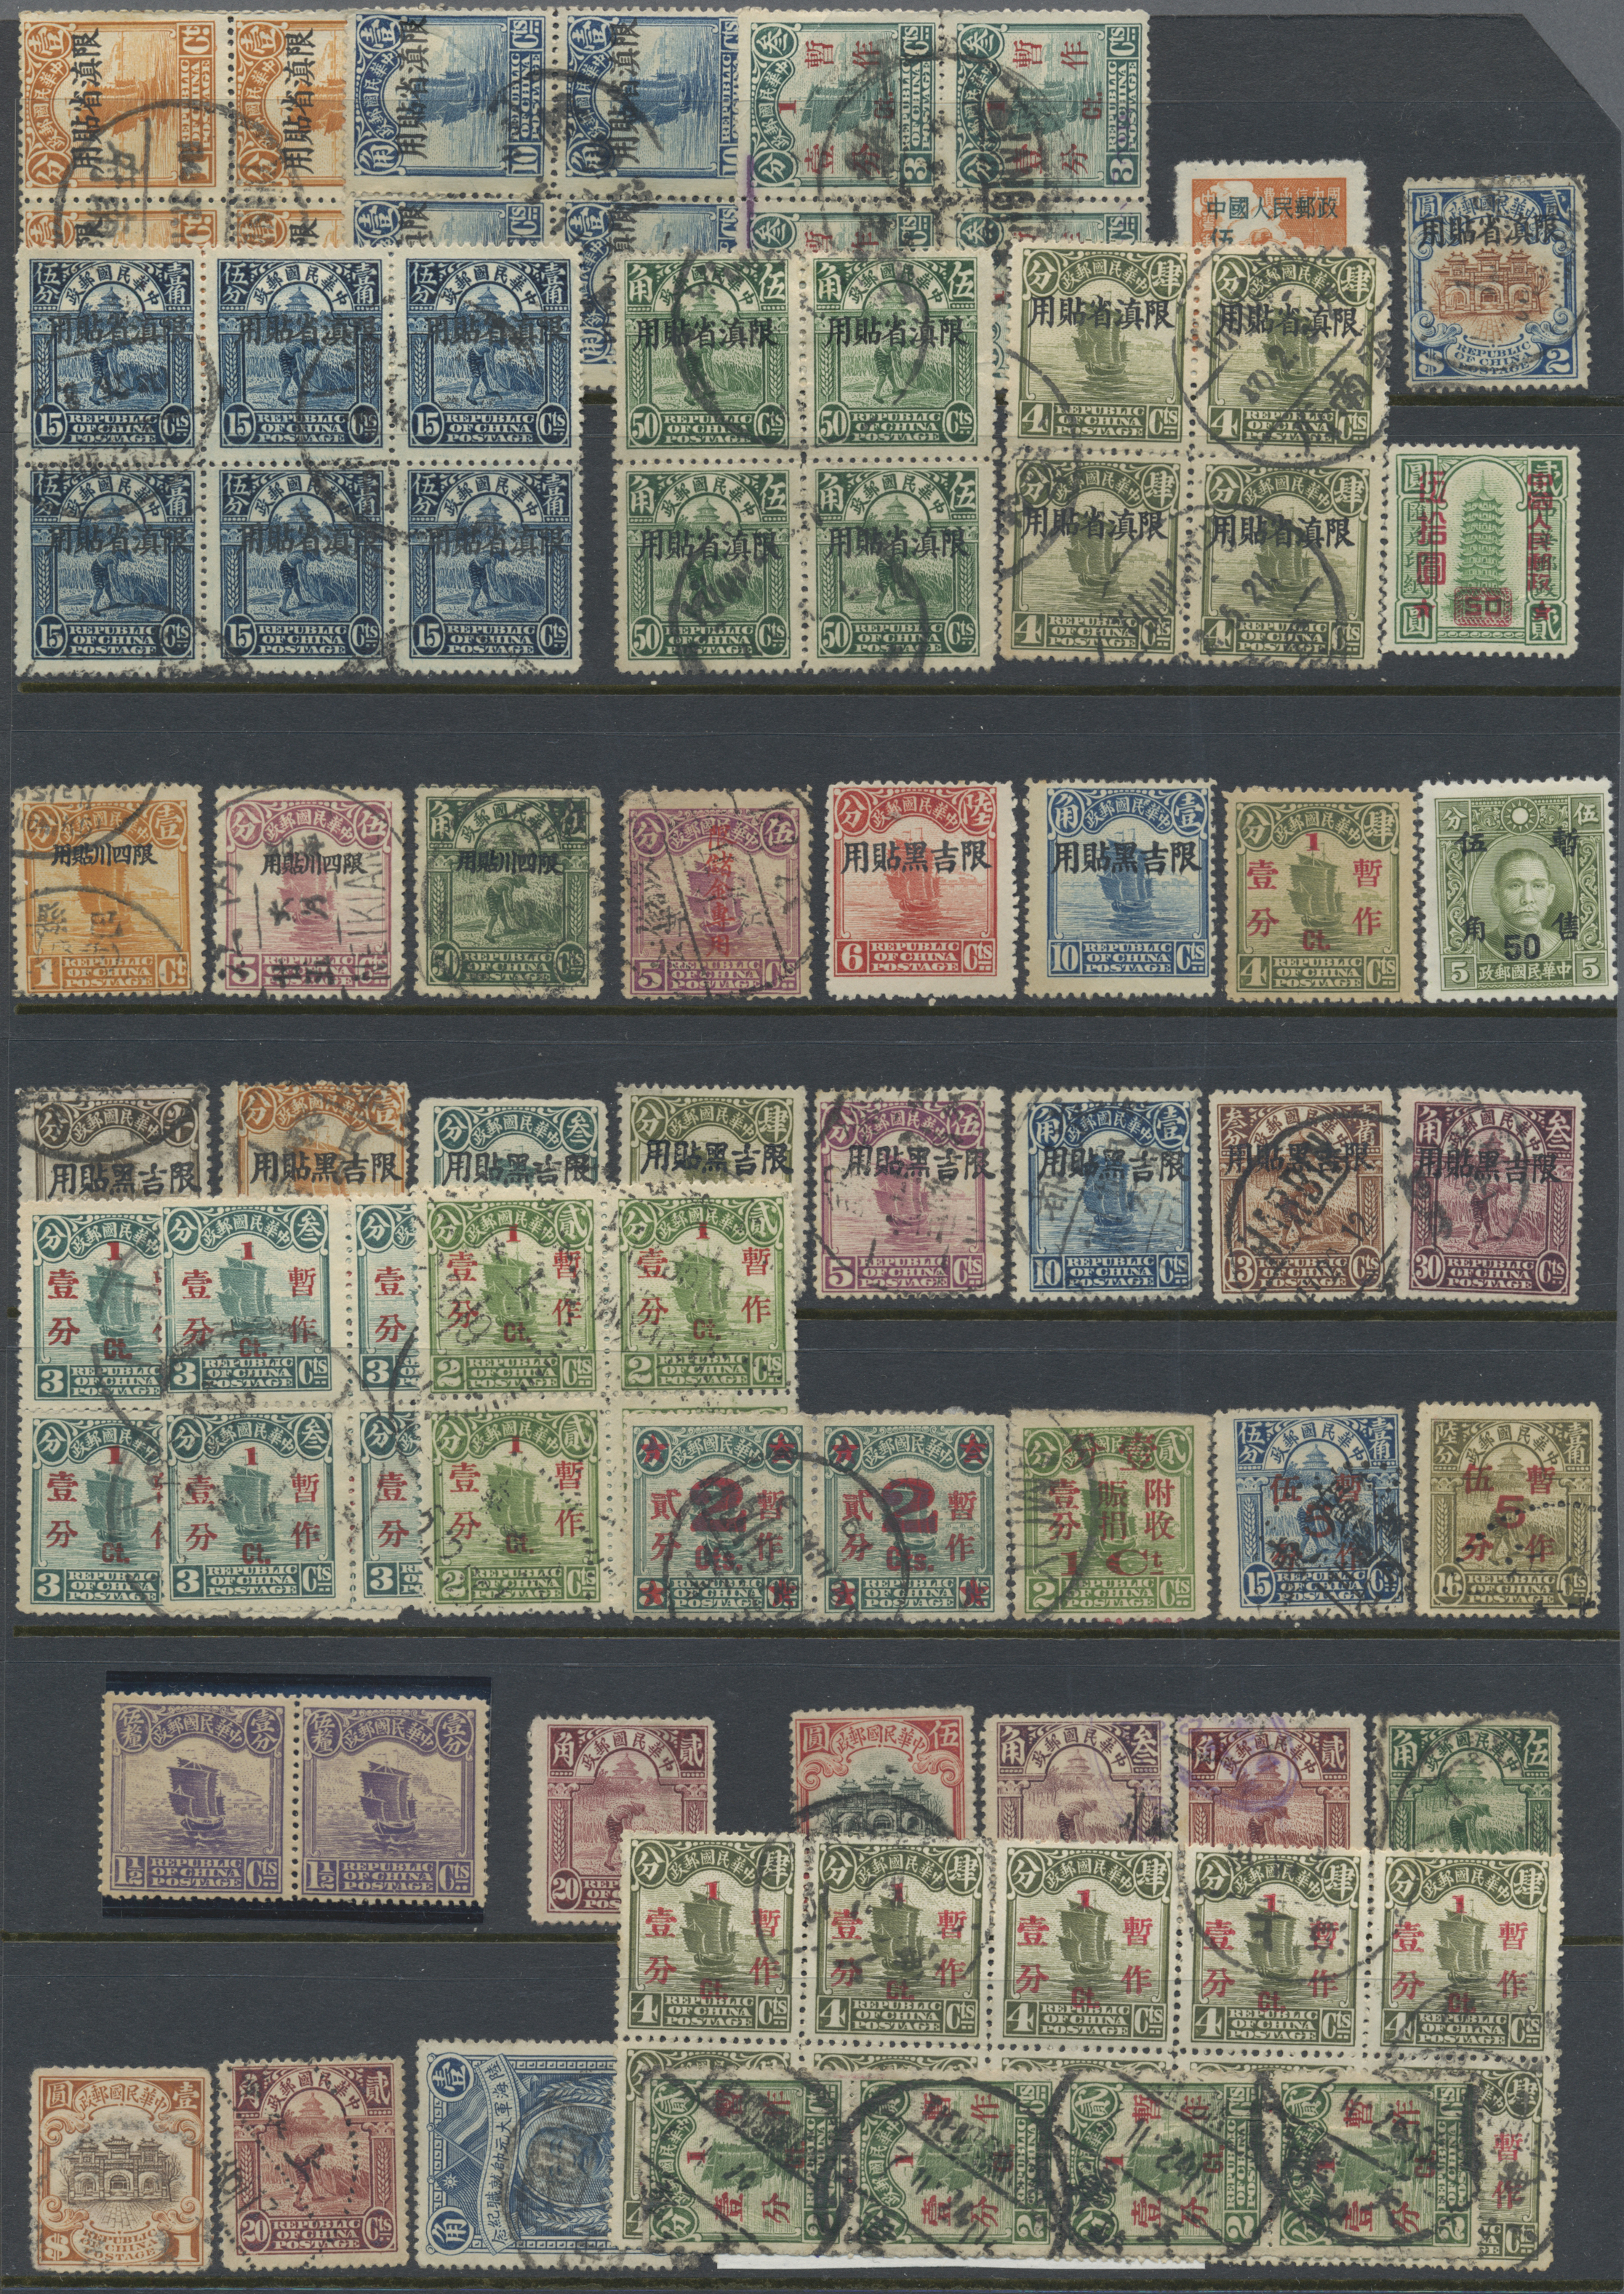 Lot 34579 - China  -  Auktionshaus Christoph Gärtner GmbH & Co. KG Sale #44 Collections Germany